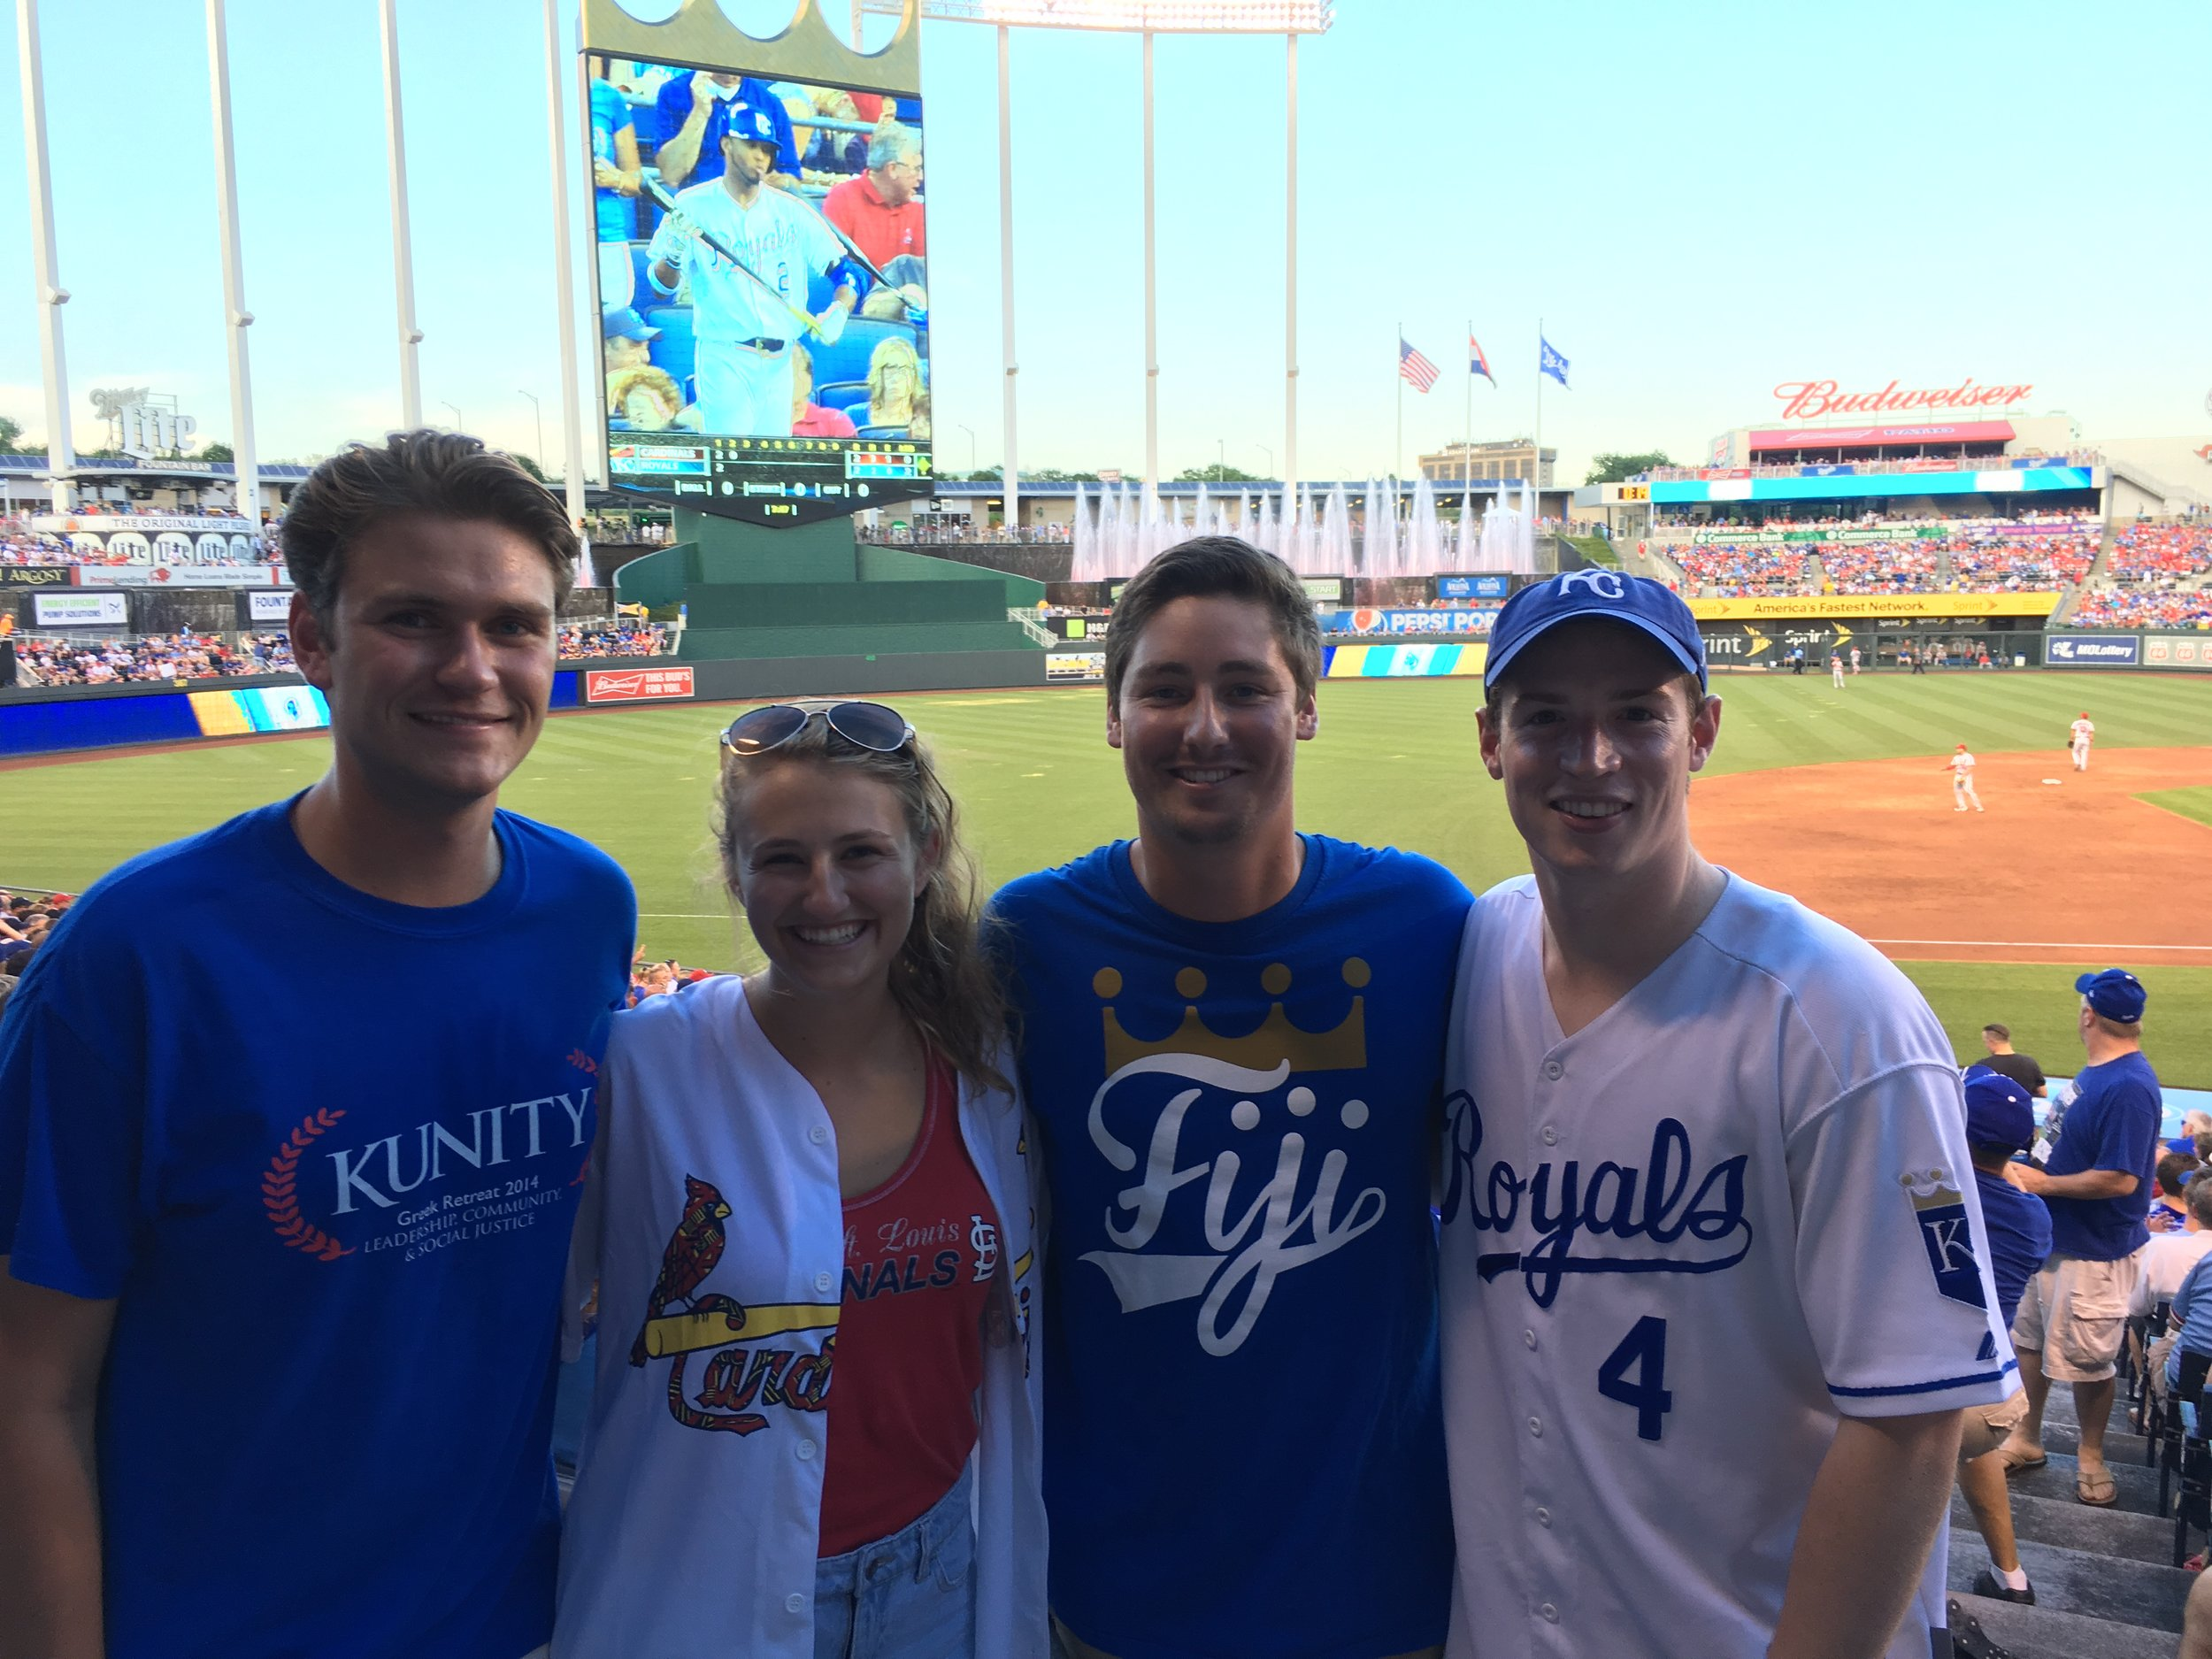 Royals Date Party